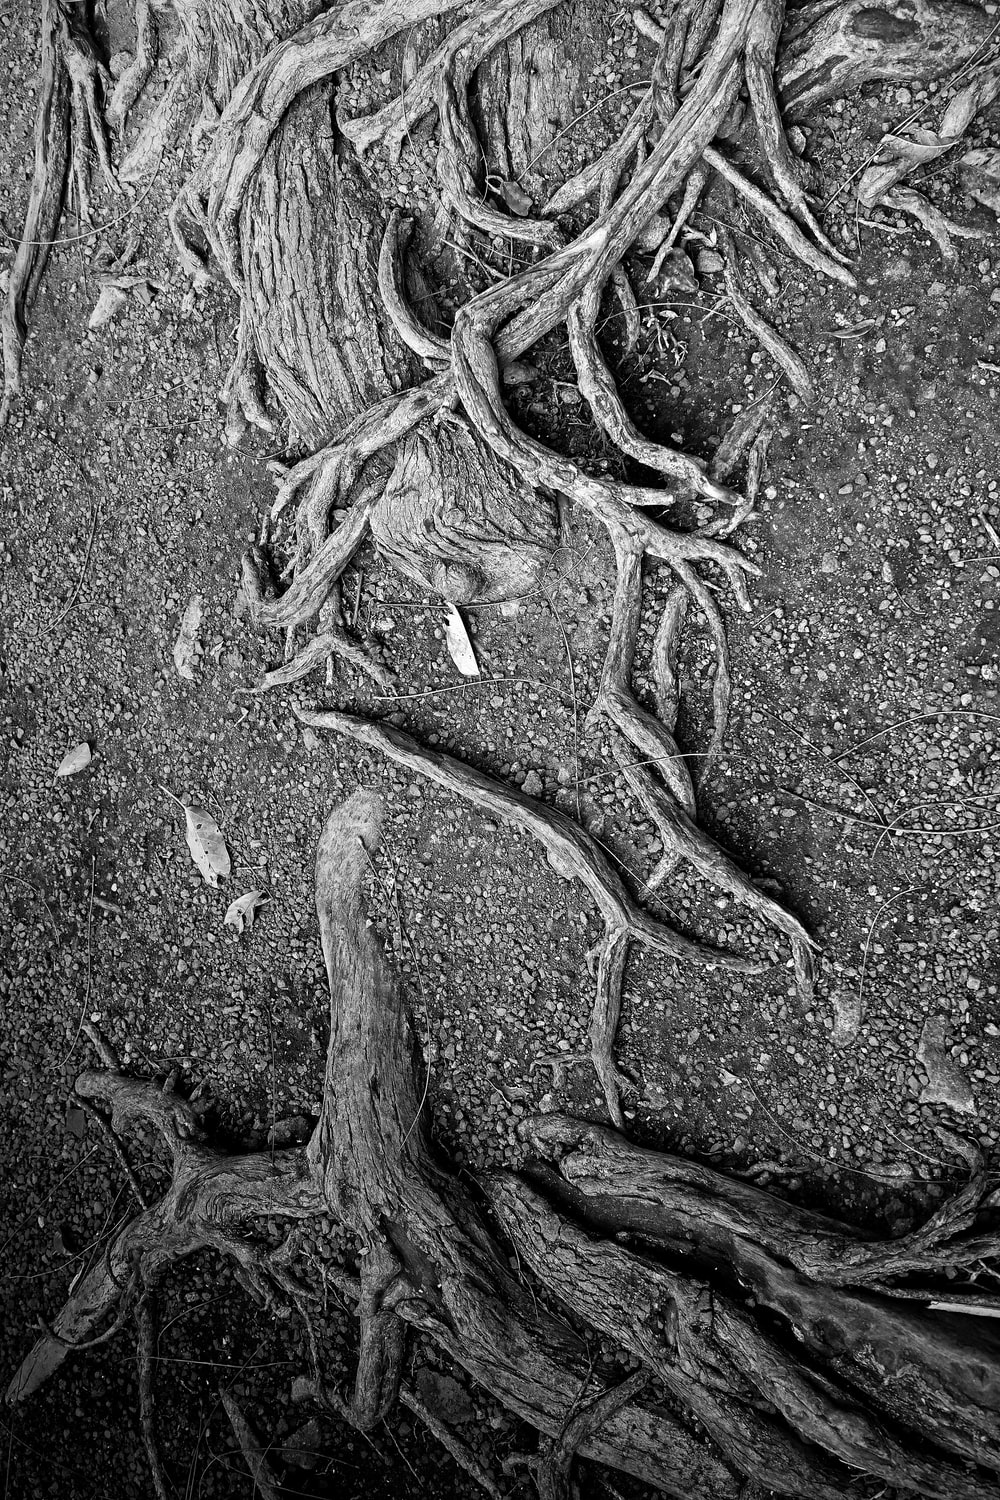 grayscale photo of a rope on a concrete floor